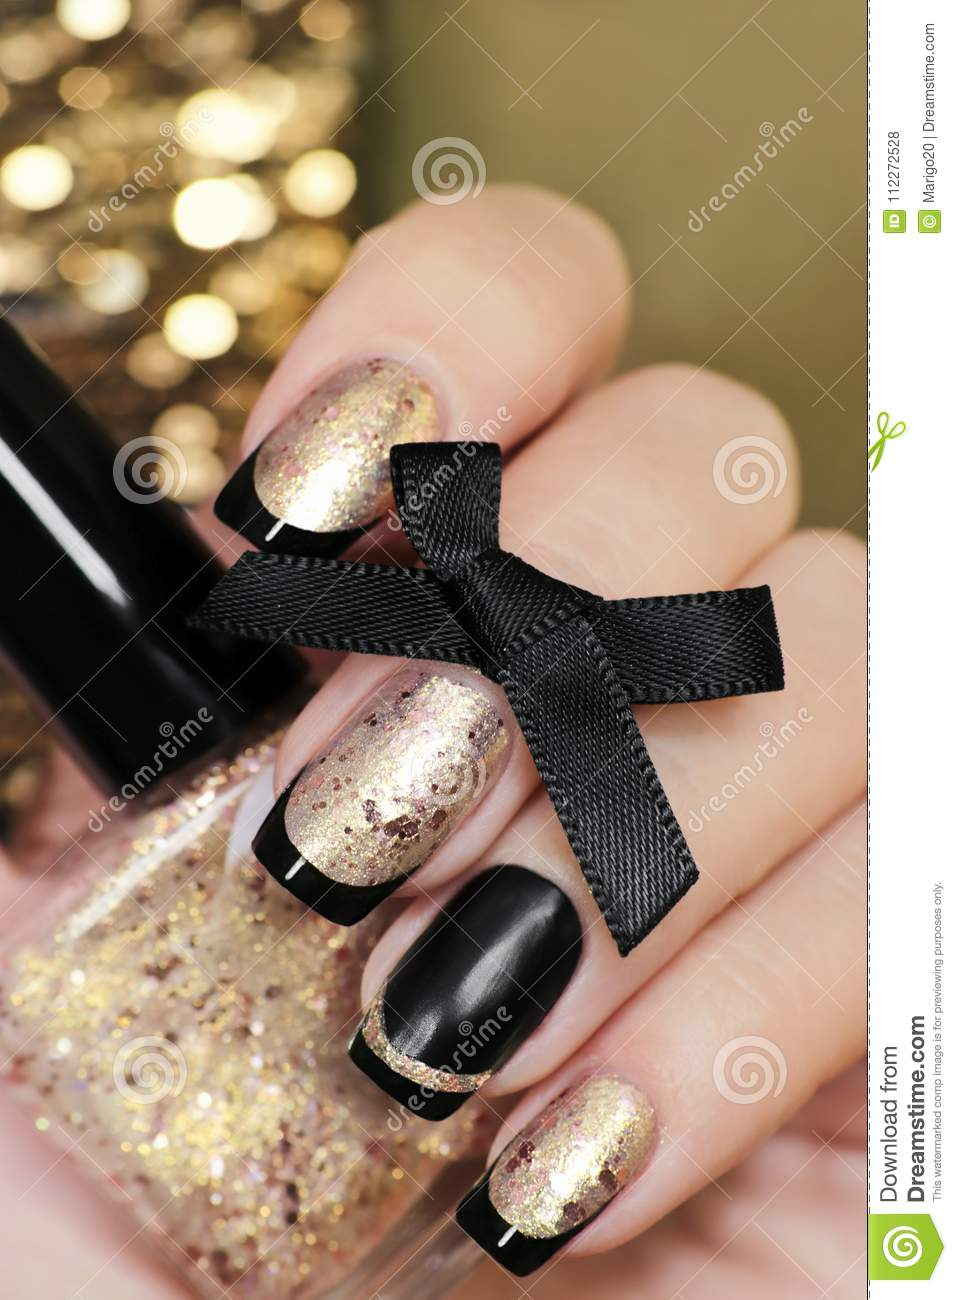 Black And Gold French Manicure Stock Photo - Image of false, closeup ...